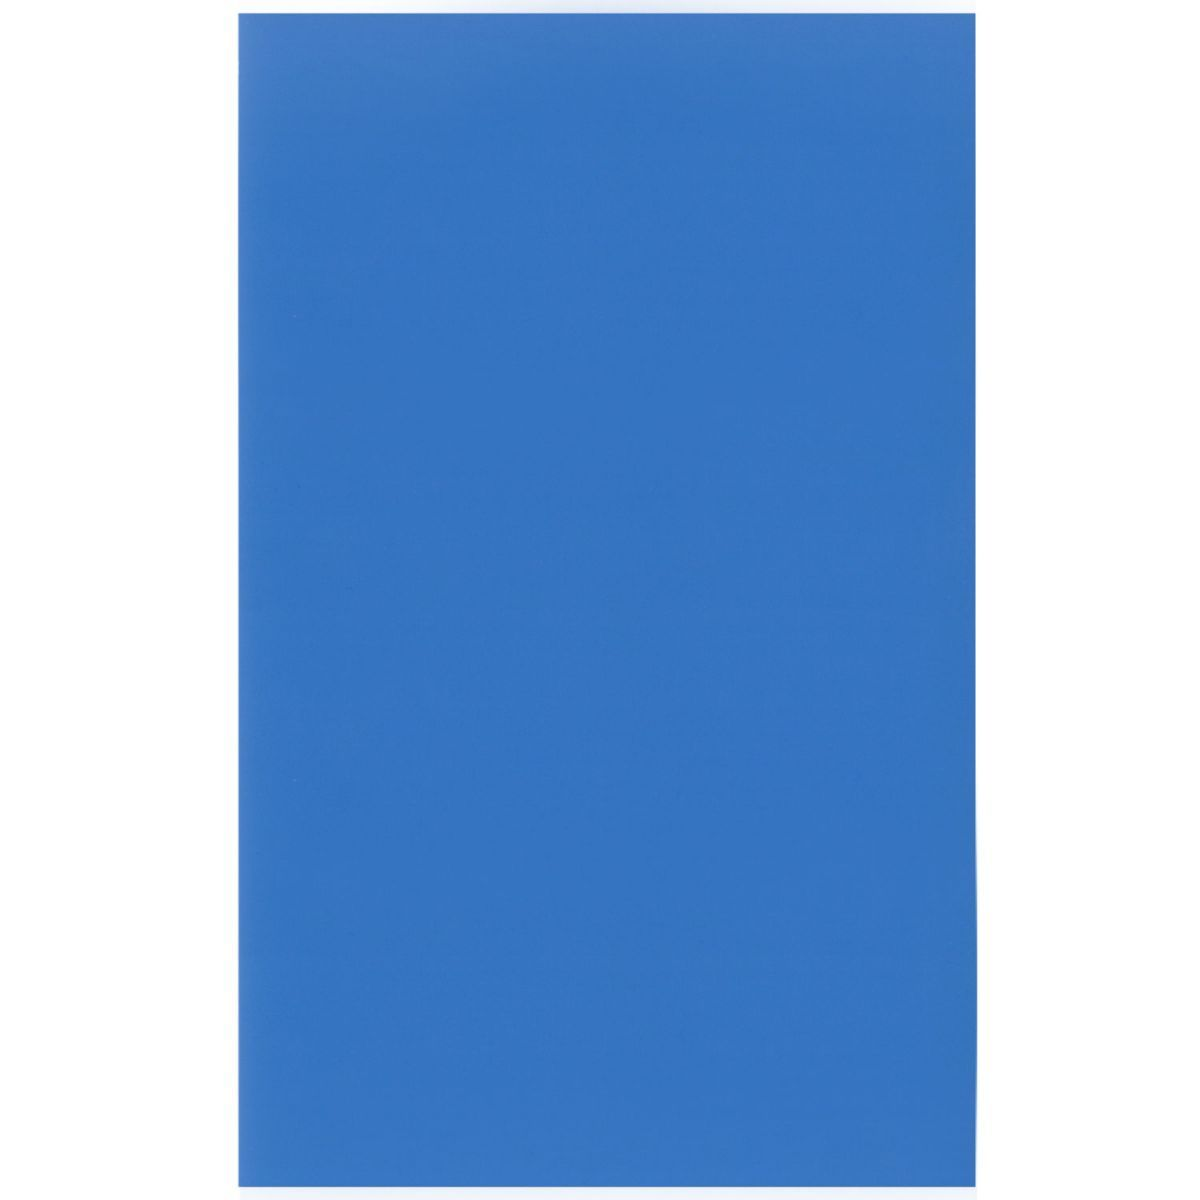 clearplex spectrum film 6 inch riviera blue matte 10 pcs